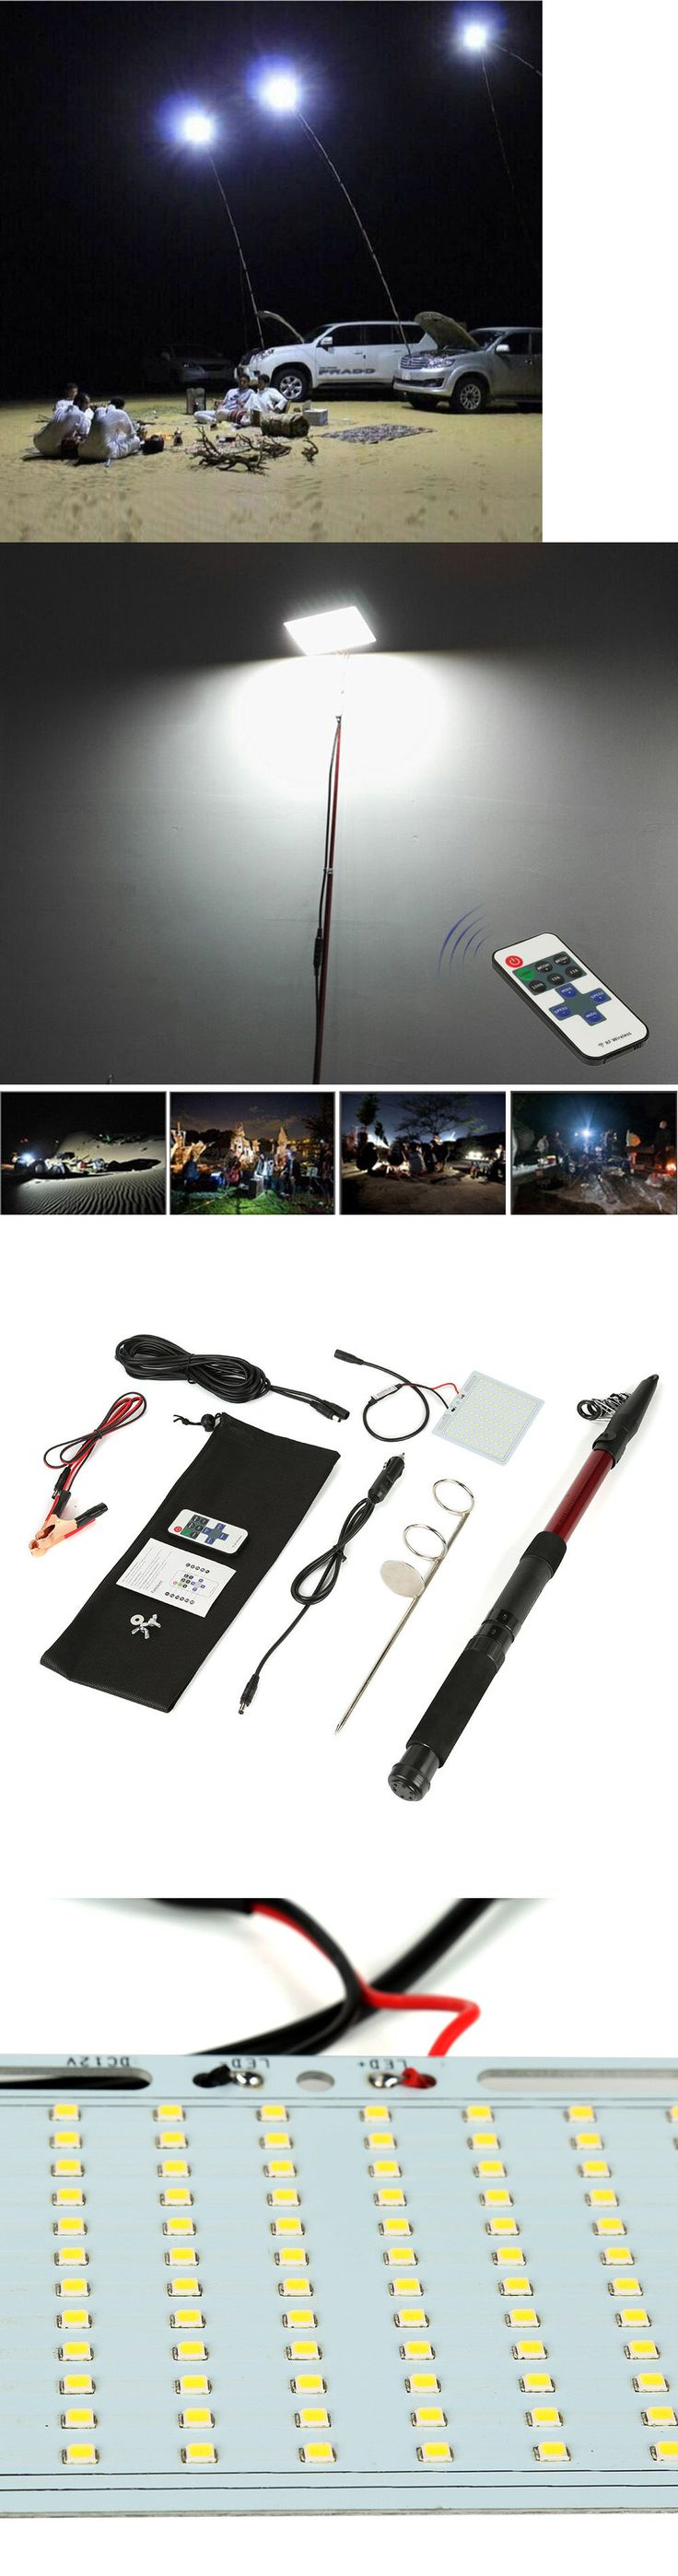 Lanterns 168867: Telescopic Fishing Rod Remote Control Camping Lamp Car Repair Led Lantern Light -> BUY IT NOW ONLY: $38.99 on eBay!